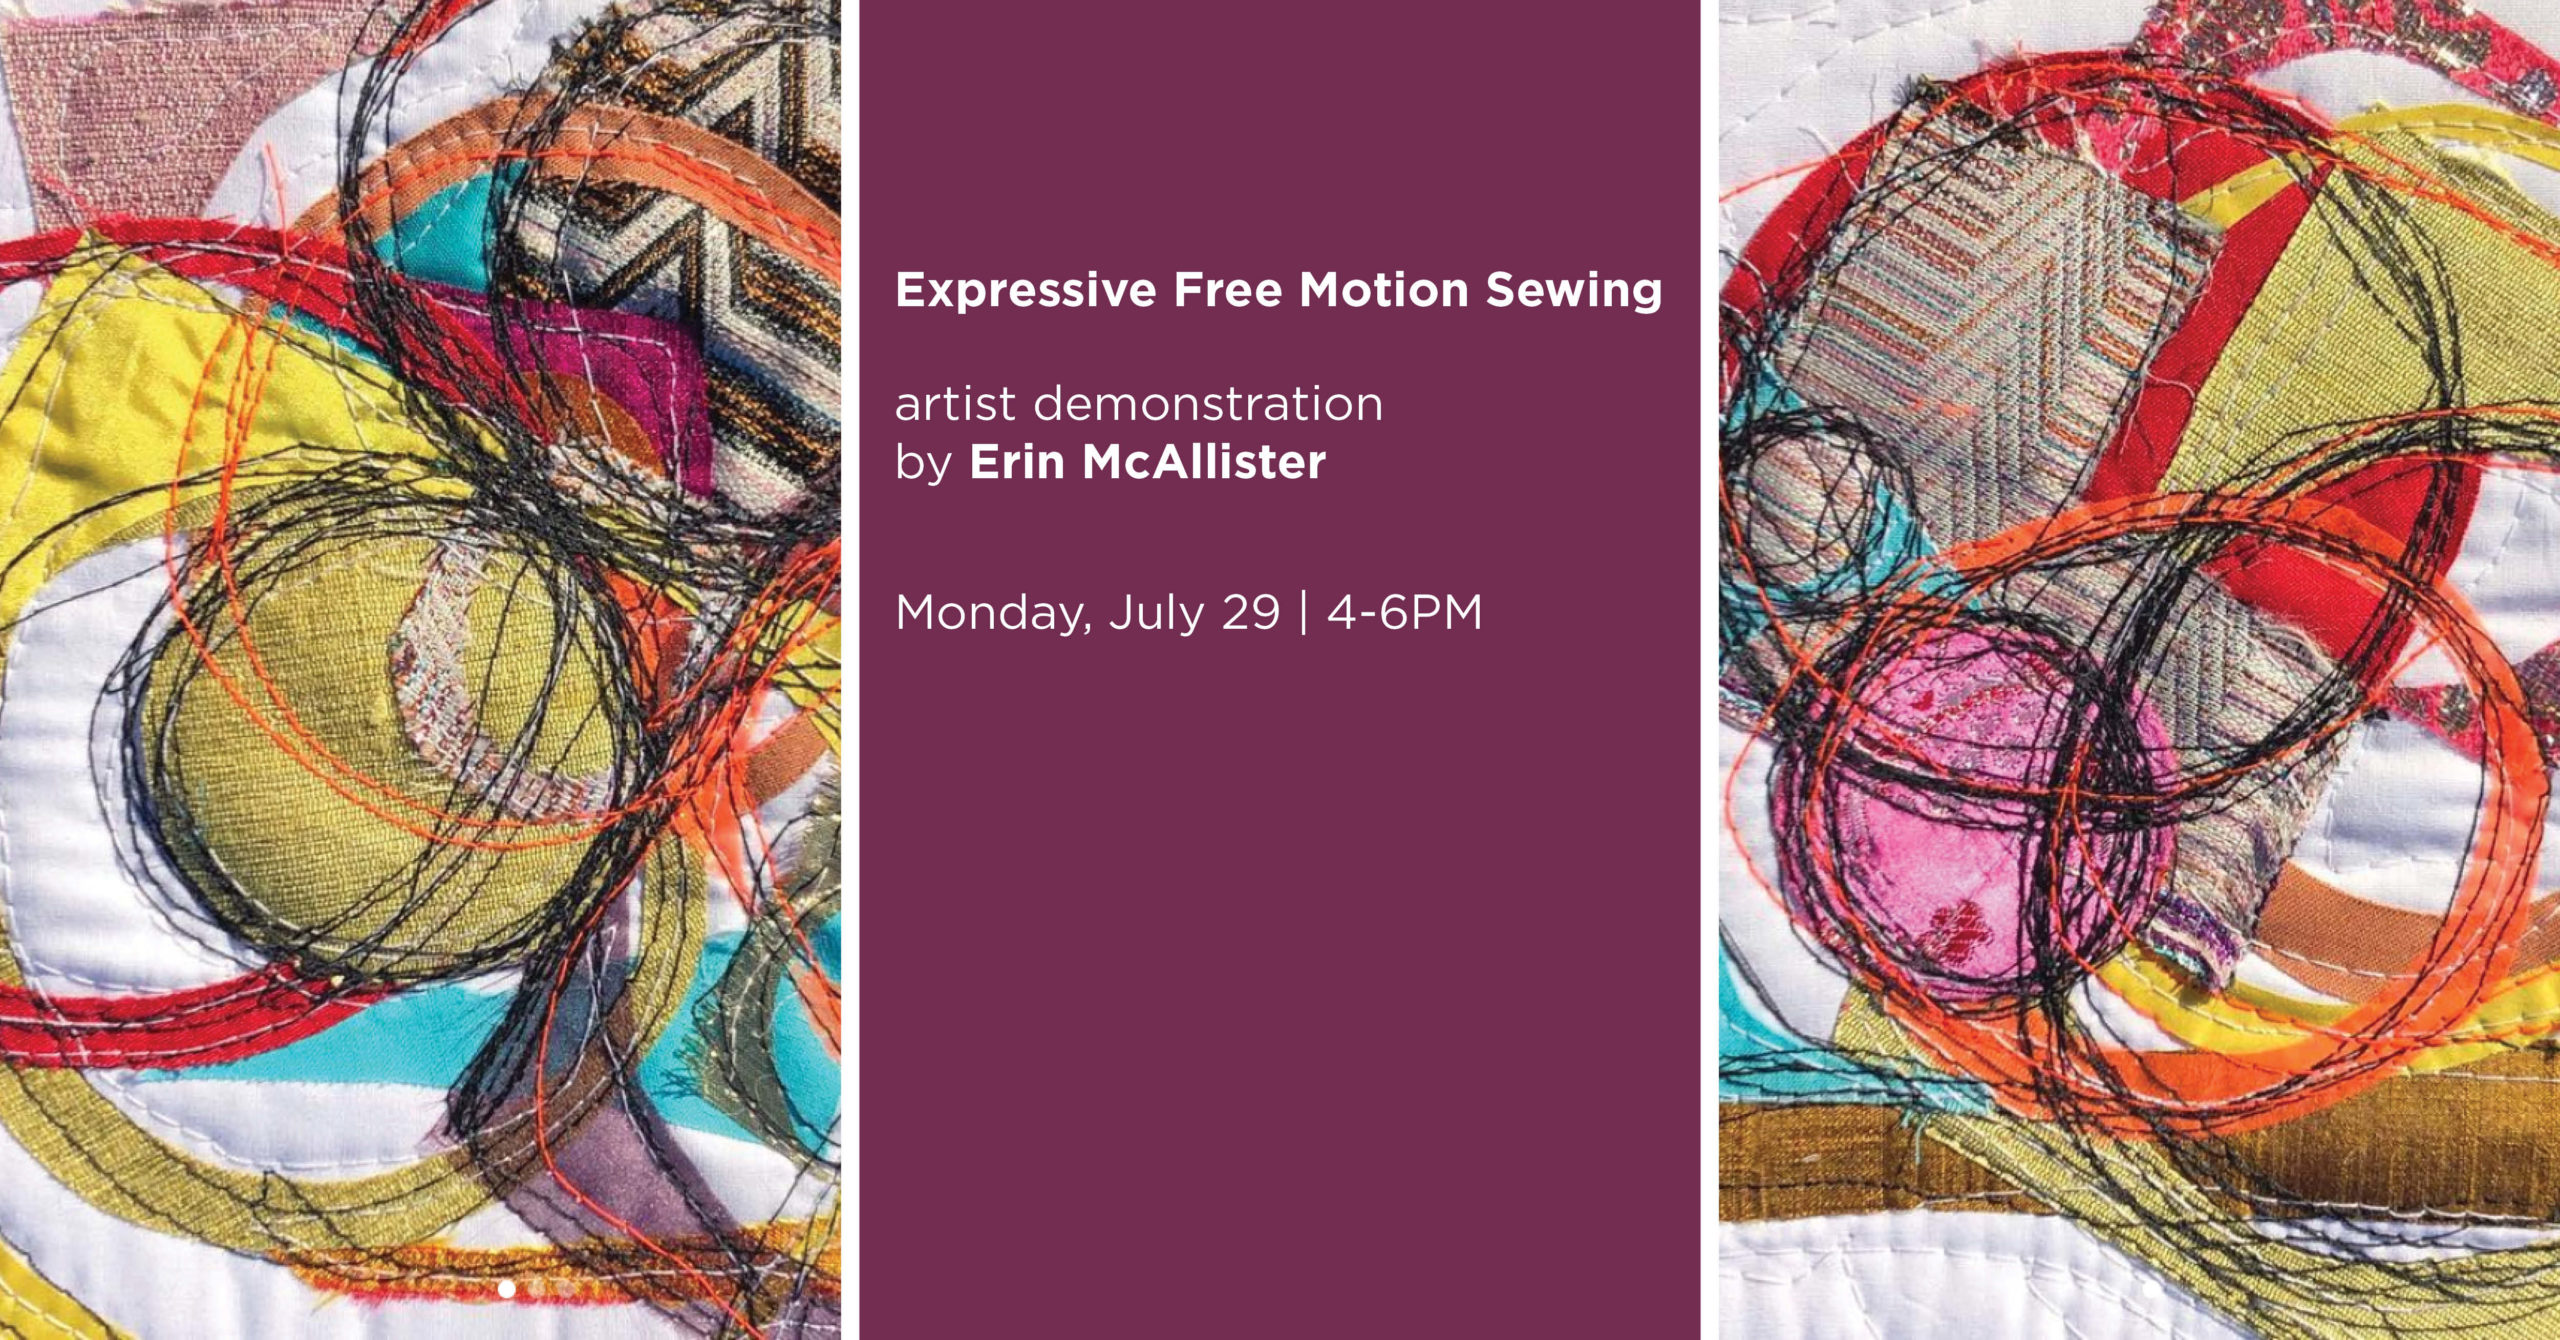 Expressive Free Motion Sewing gallery graphic. Artist demonstration by Erin McAllister. Monday, July 29th, 4 to 6pm.